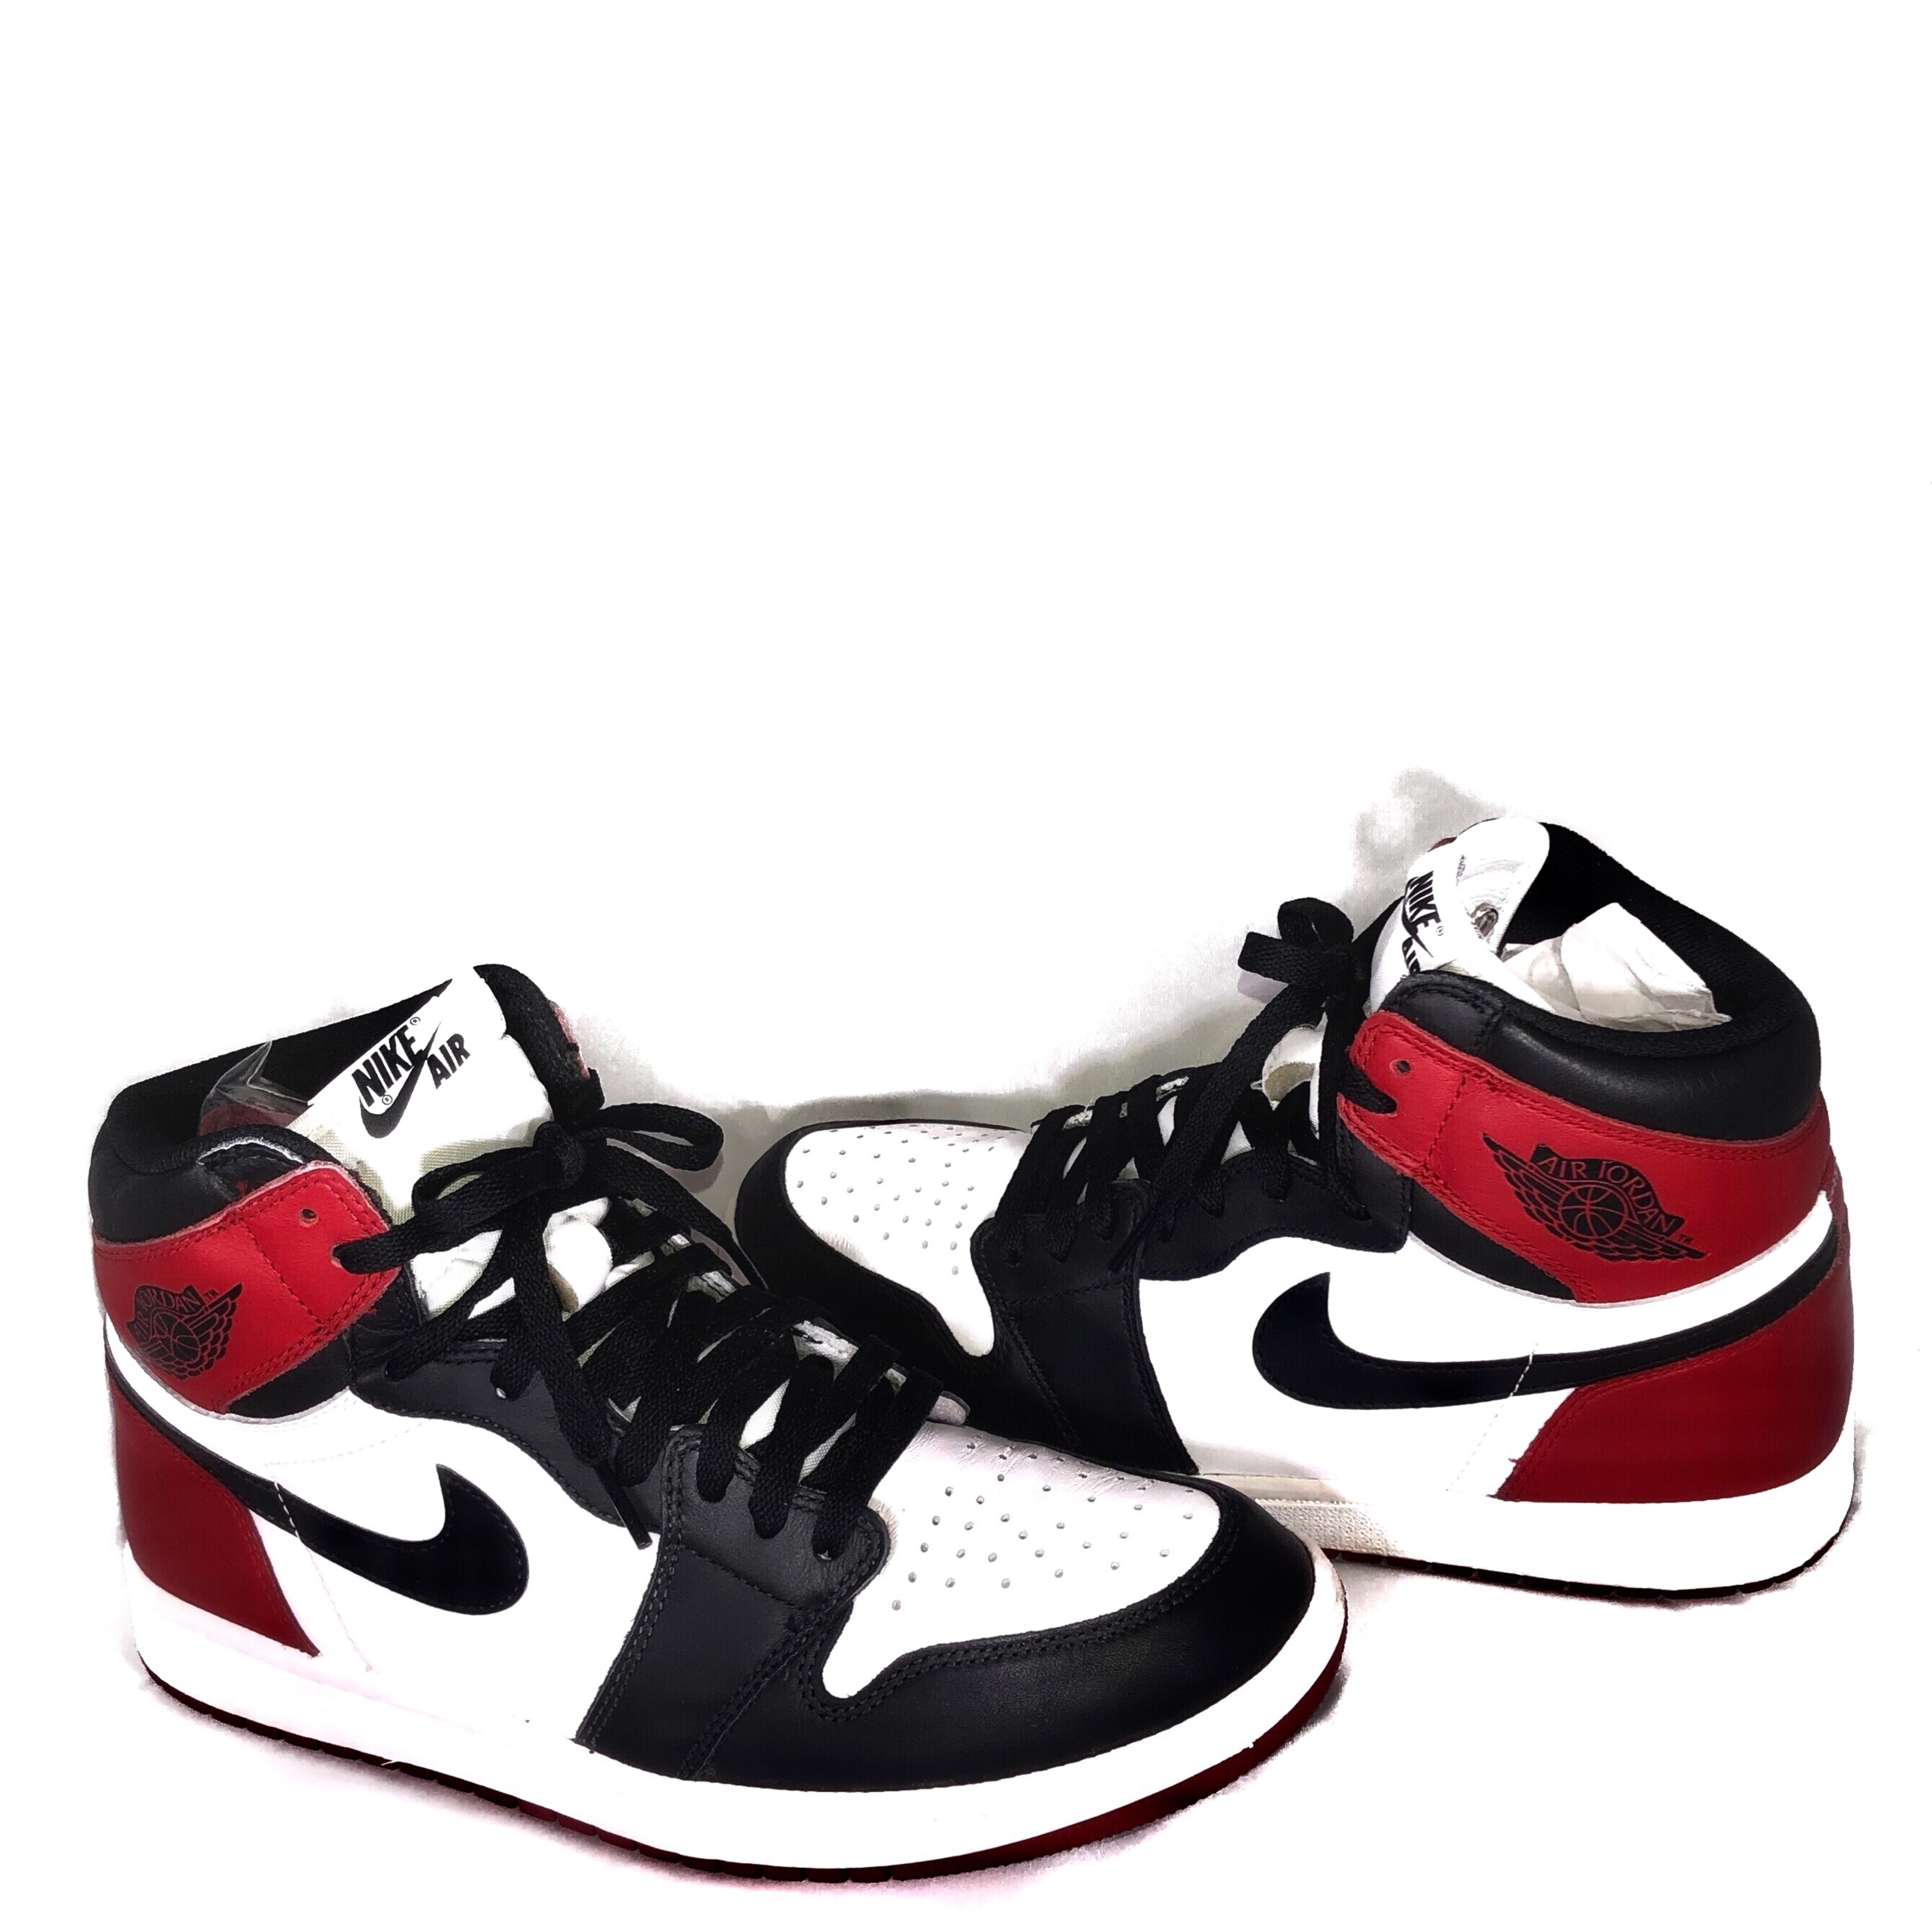 1 'black High Jordan Air Og Retro 2016 Toe' kiOZPXTwu